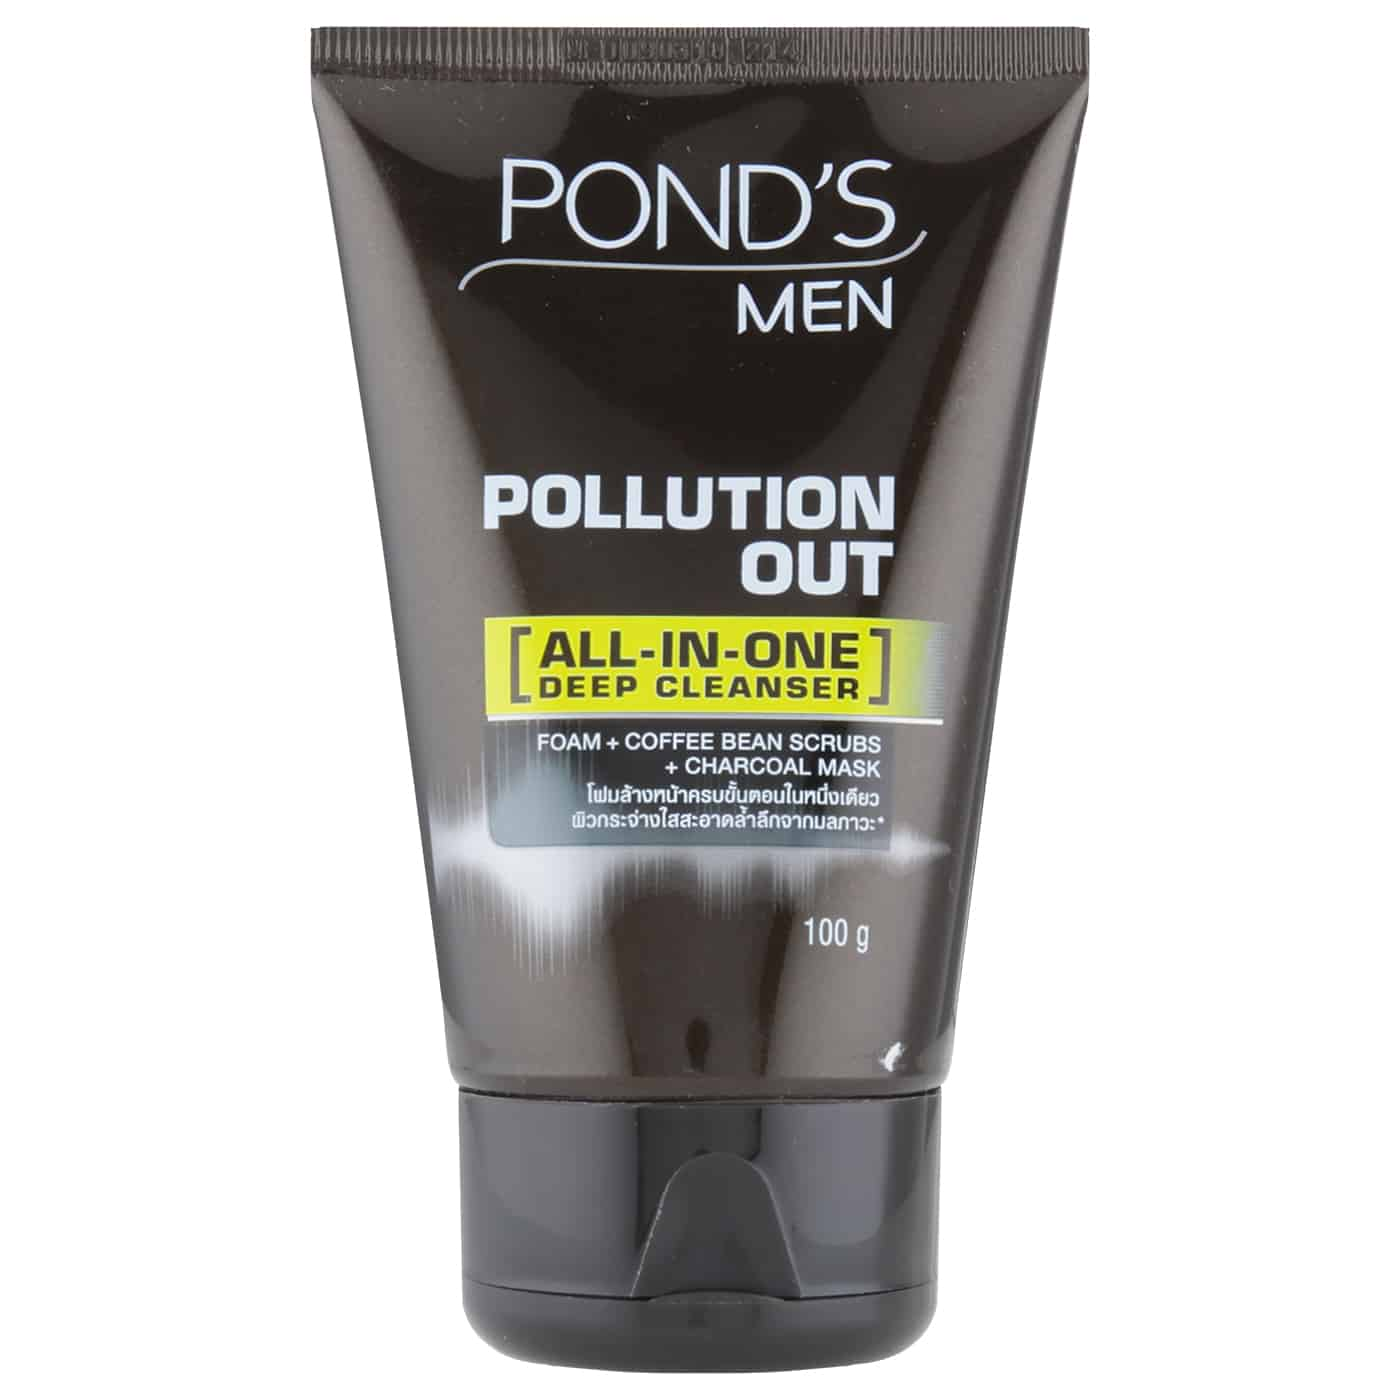 Ponds-Men-All-in-One-Deep-Cleanser-Pollution-Out